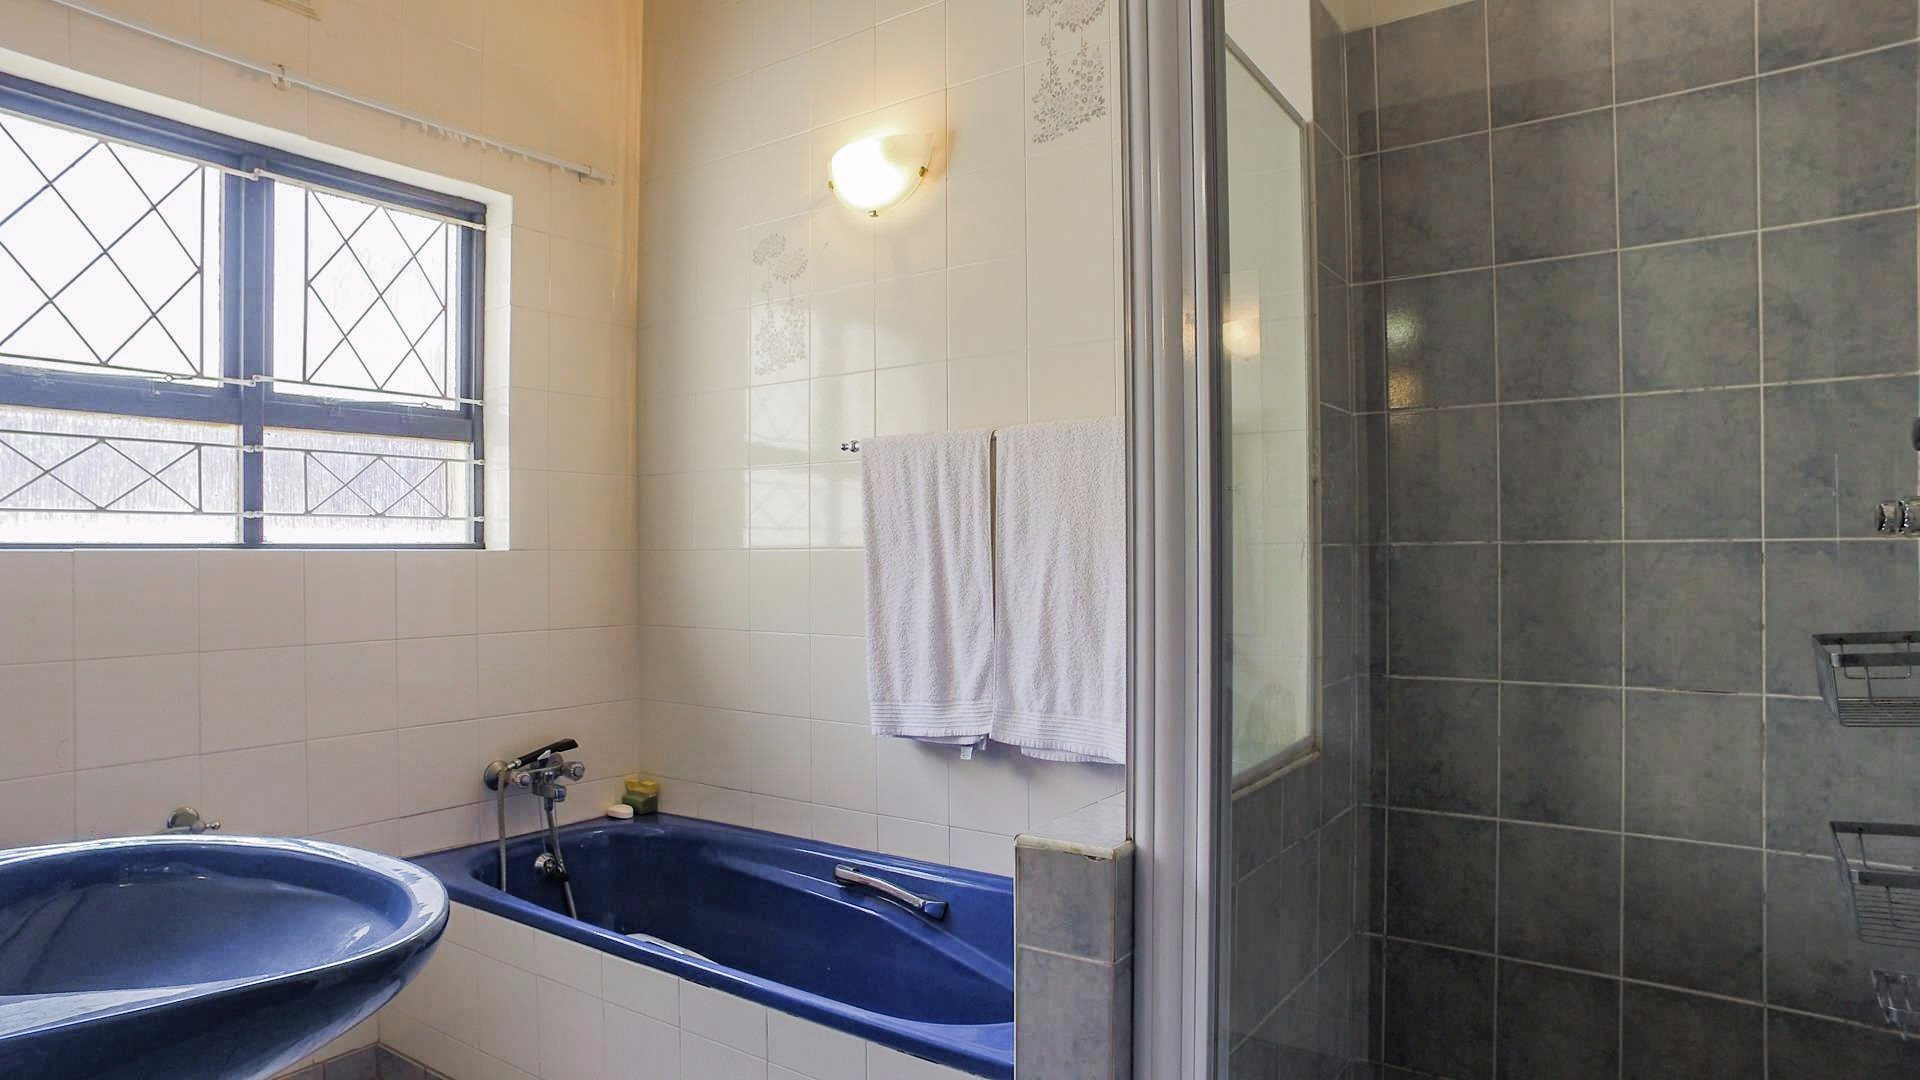 Scottburgh Central property for sale. Ref No: 13520906. Picture no 54